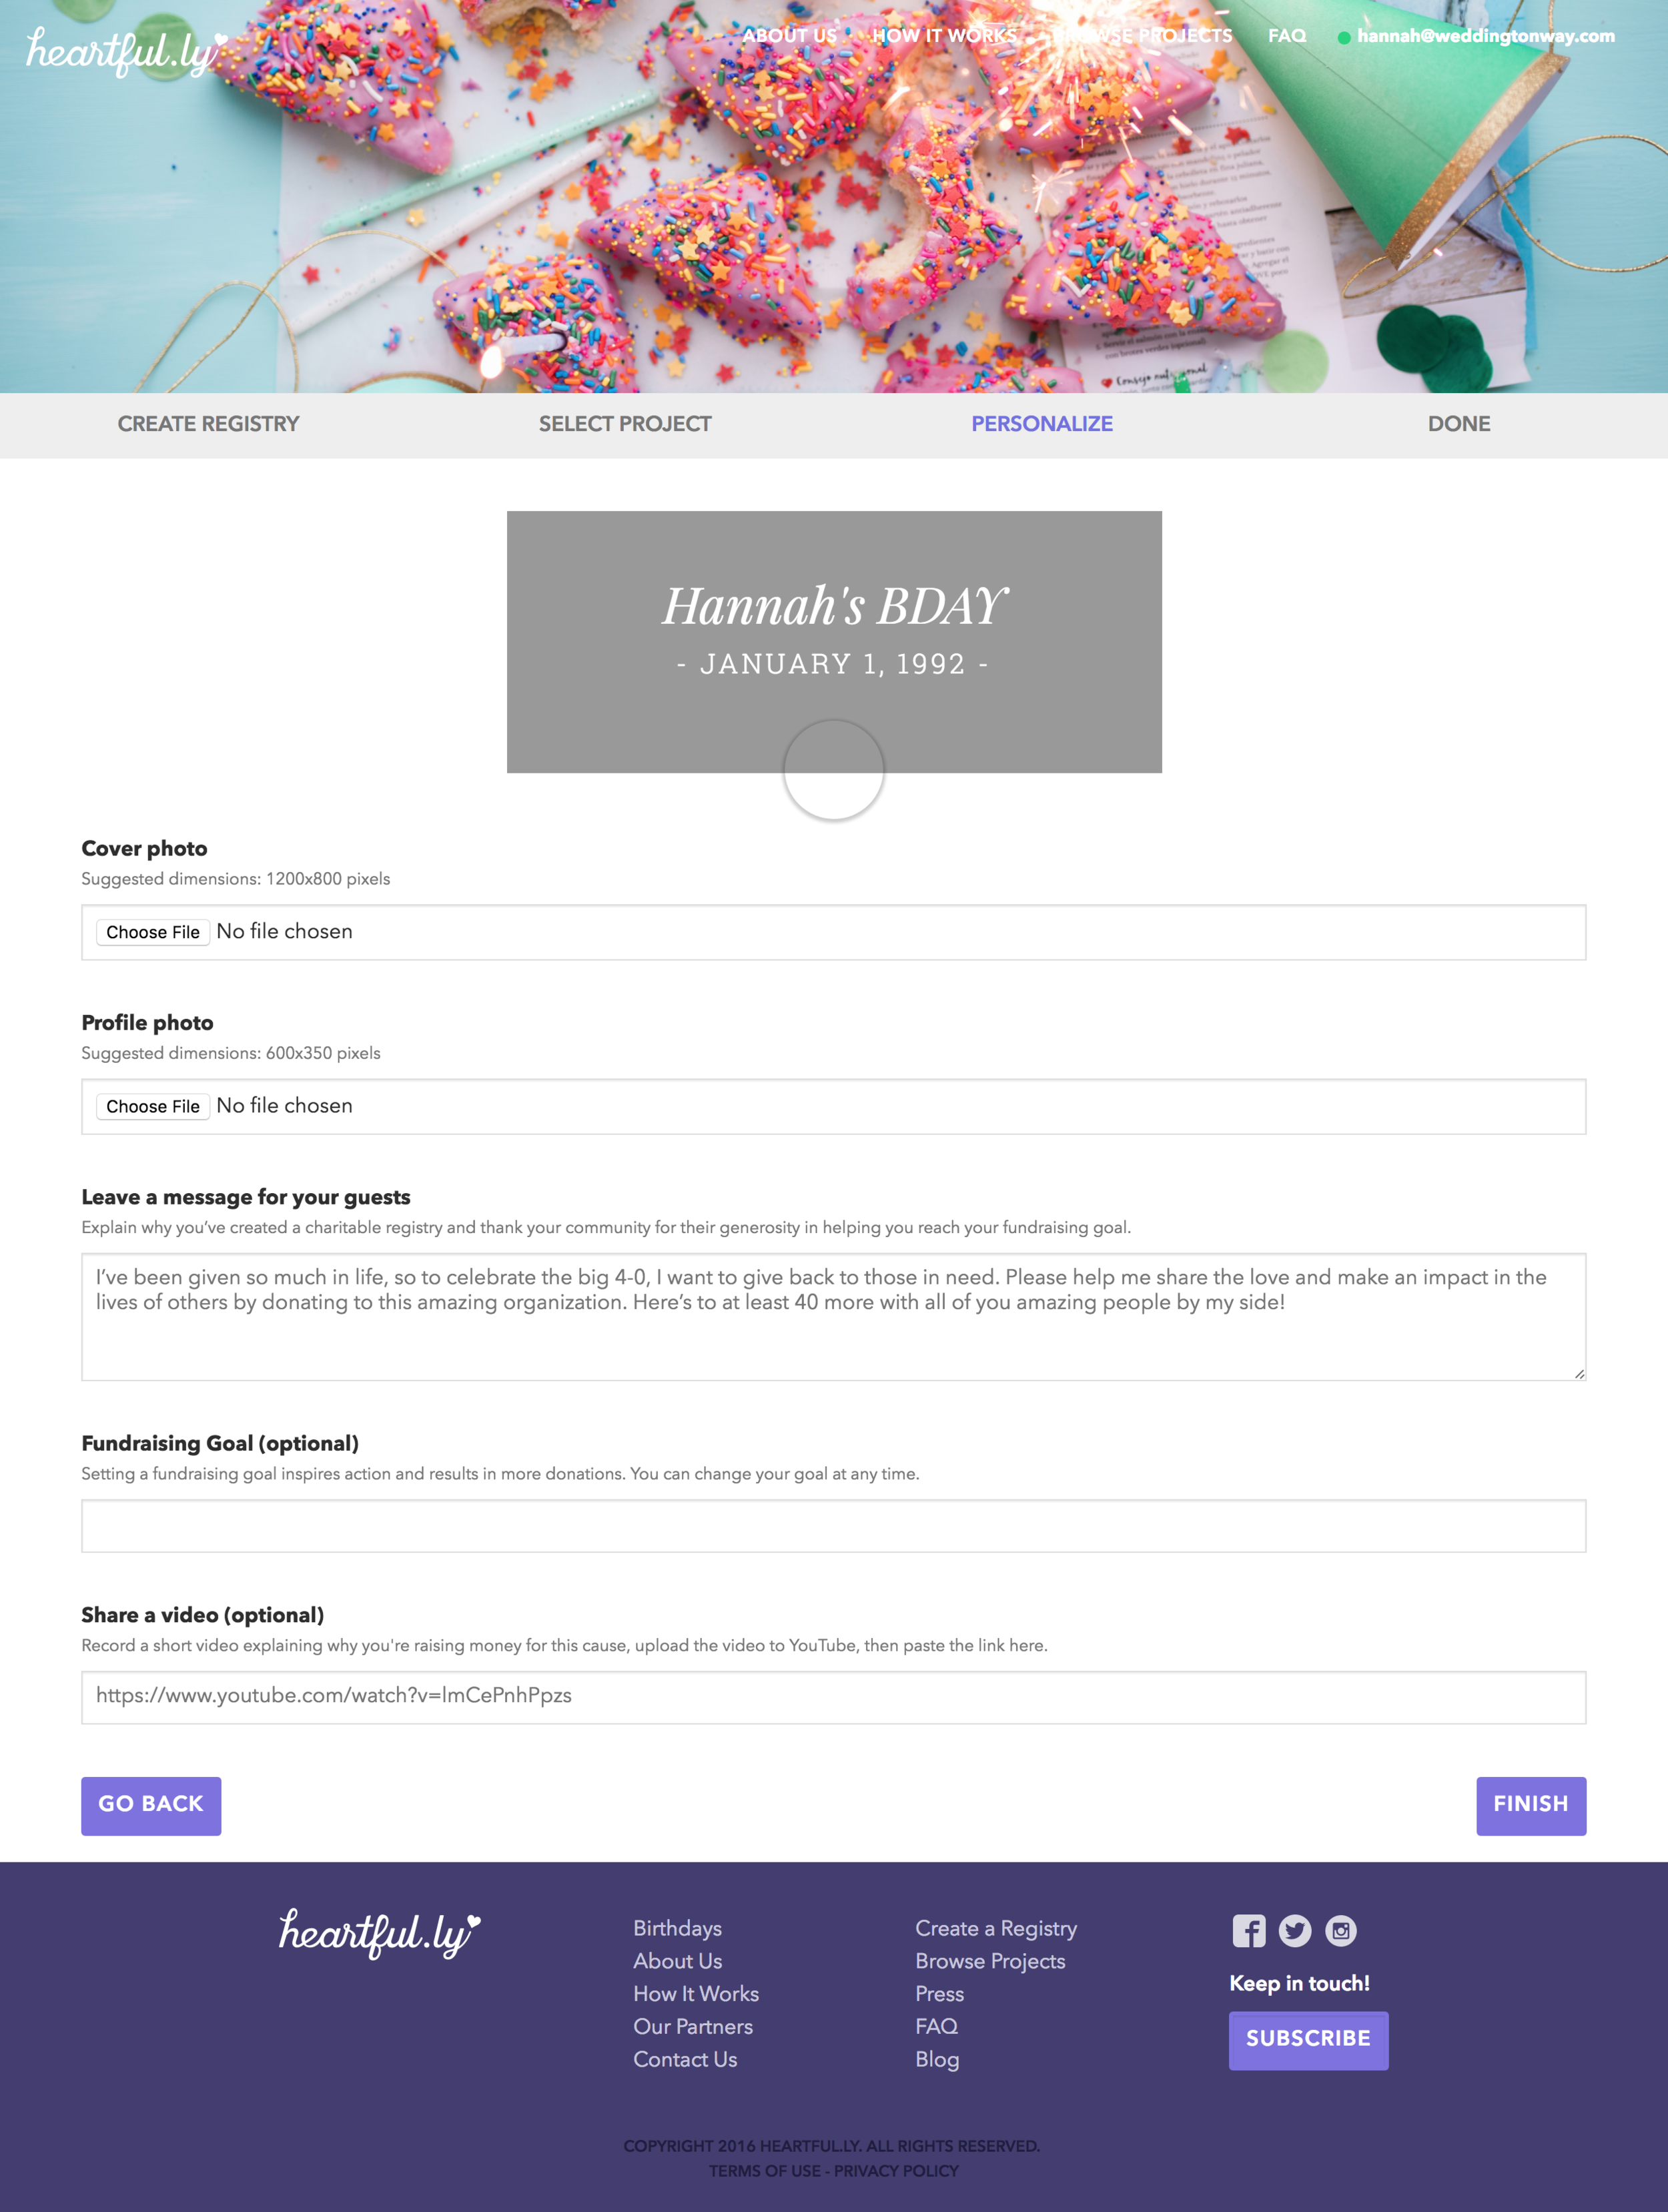 screencapture-heartful-ly-registries-new-1498537025711.png